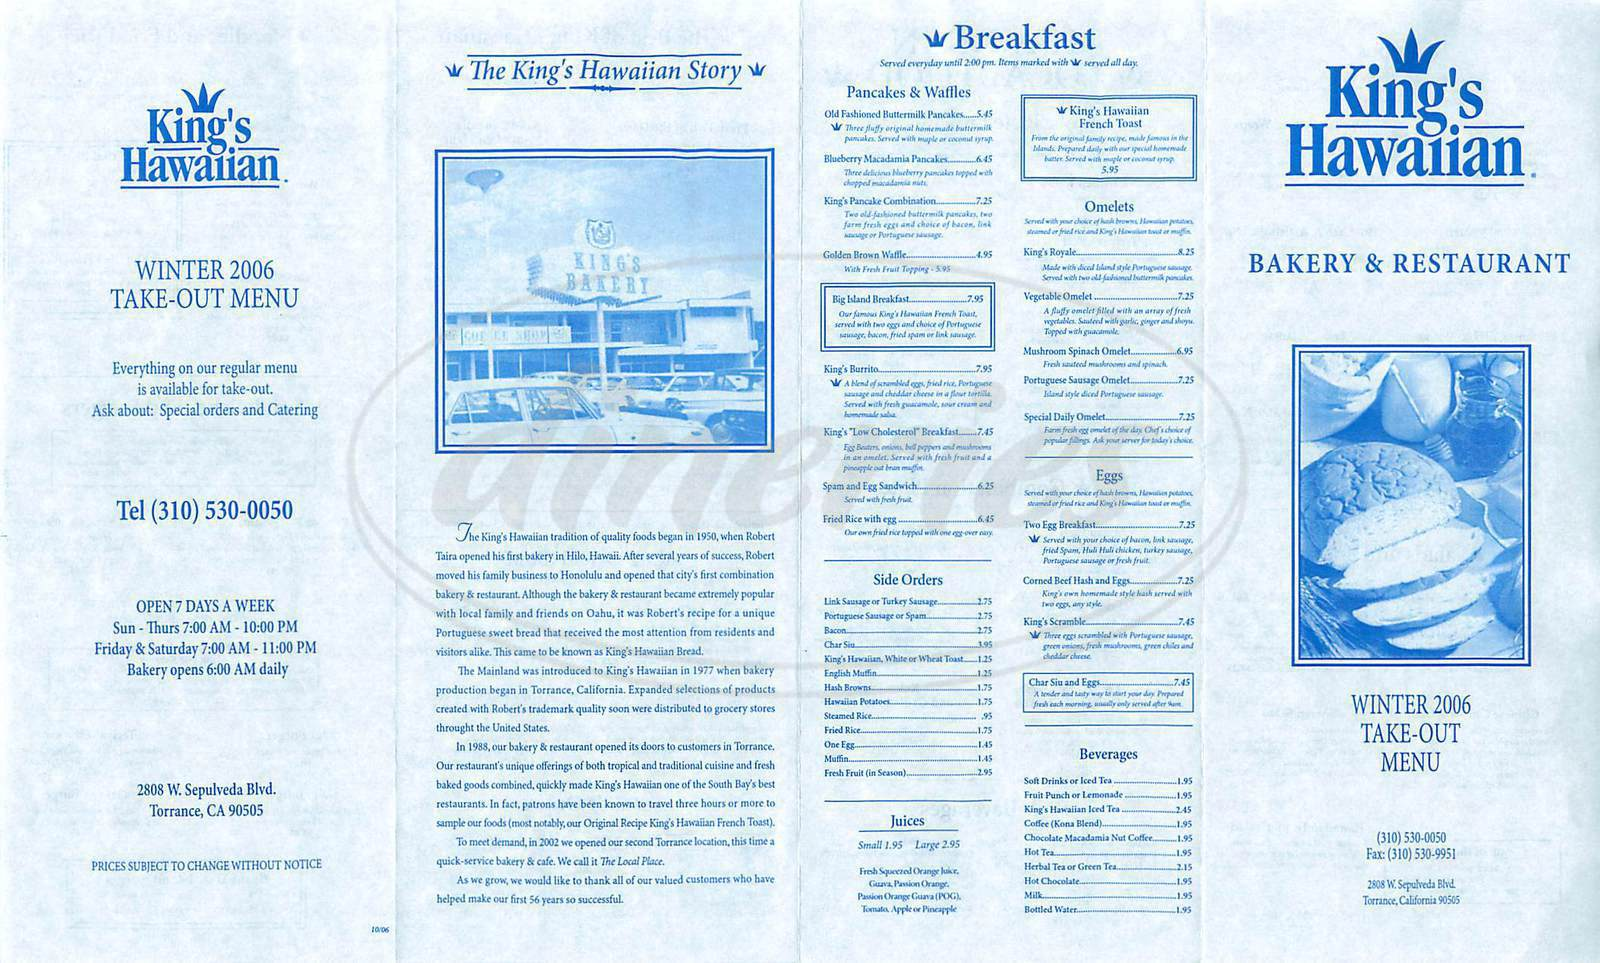 menu for Kings Hawaiian Restaurant & Bakery